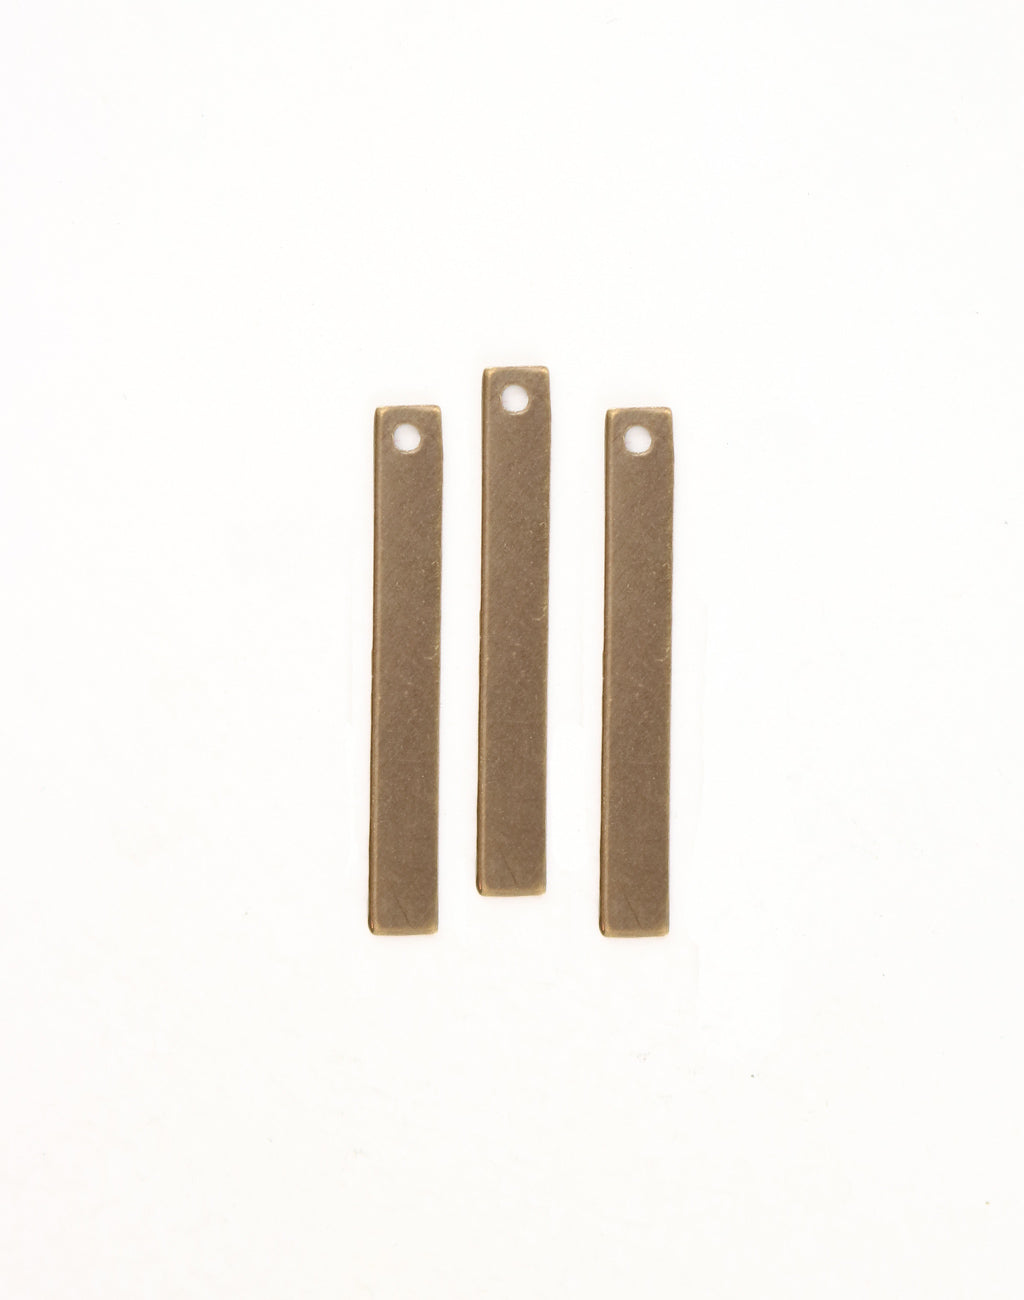 Rectangle, 32x4mm, 24ga, (3pcs)